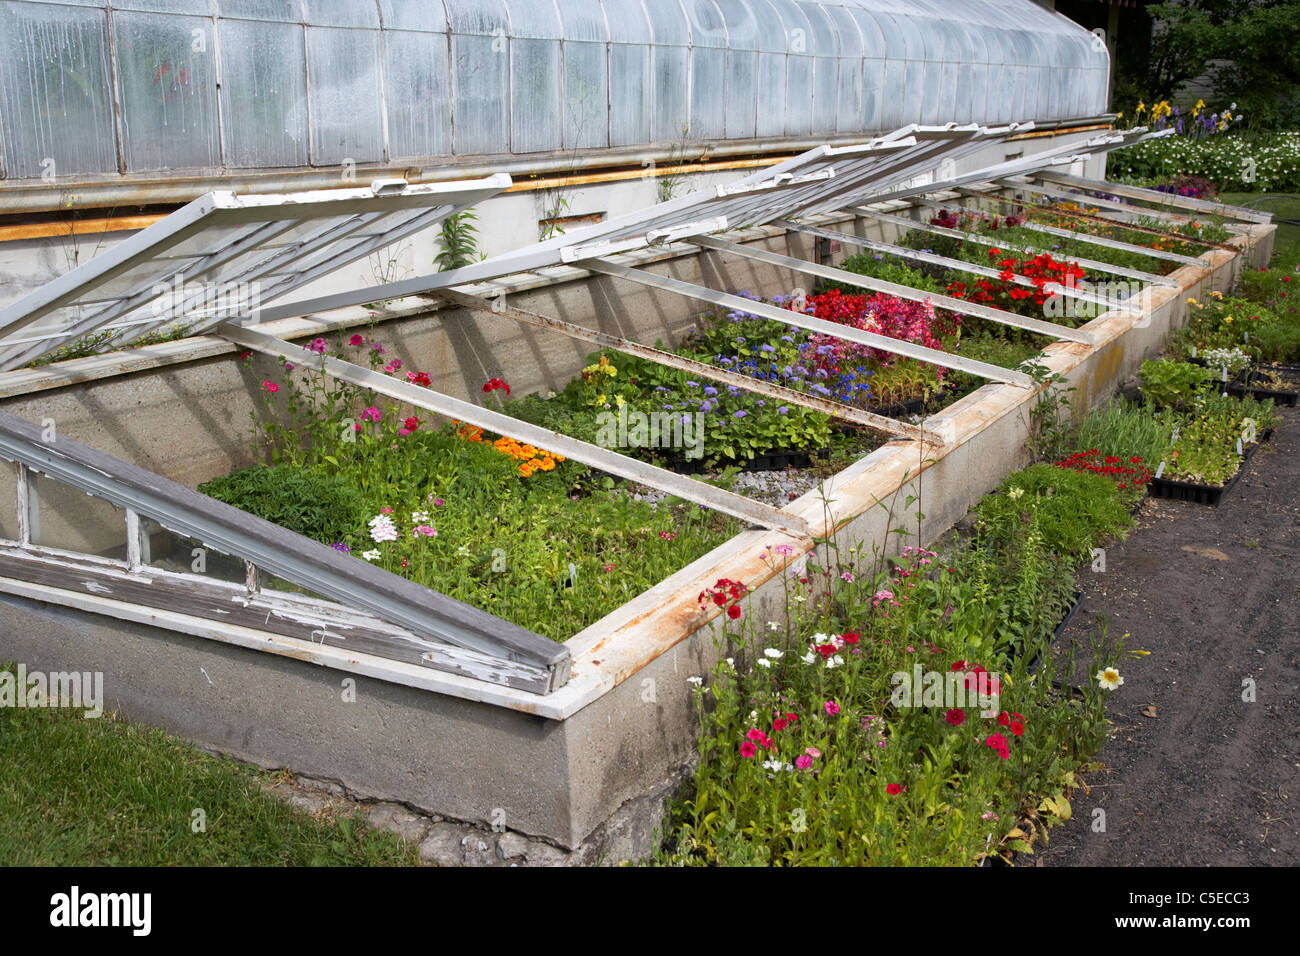 Growing In Cold Frame Stock Photos & Growing In Cold Frame Stock ...